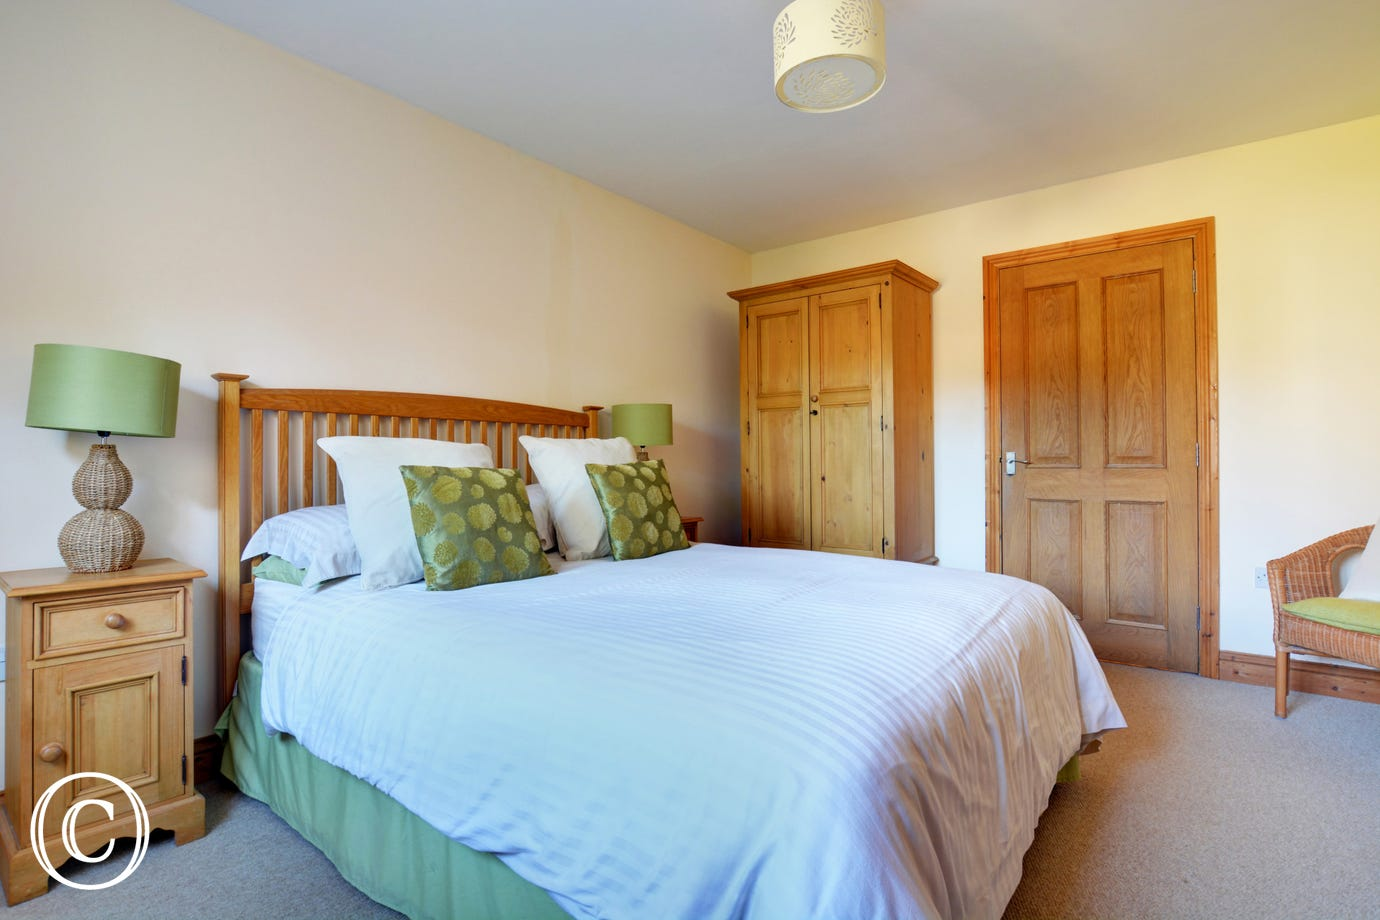 The double bedroom is stylishly furnished with a double bed, comfortable seating and ample storage